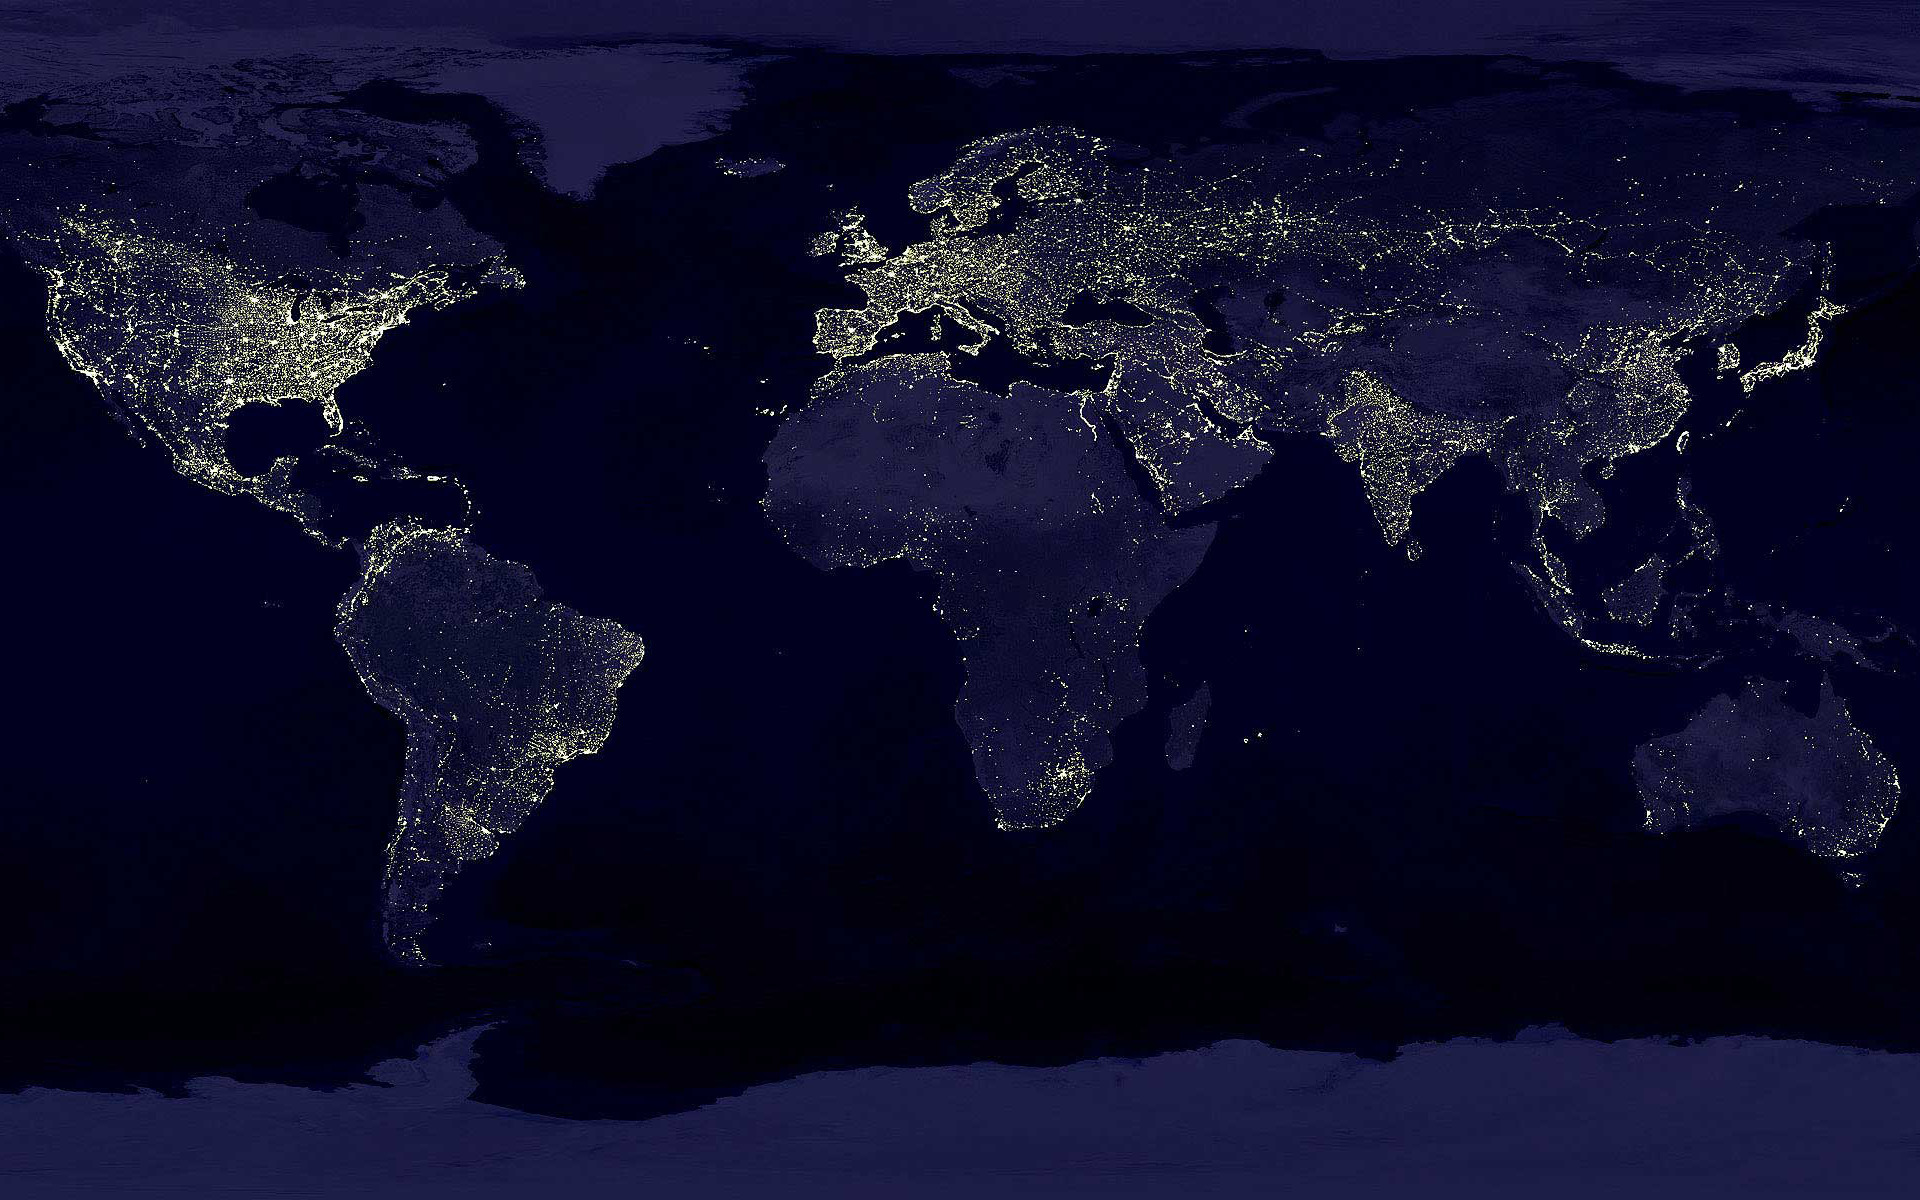 night lights Earth Maps HD Wallpaper